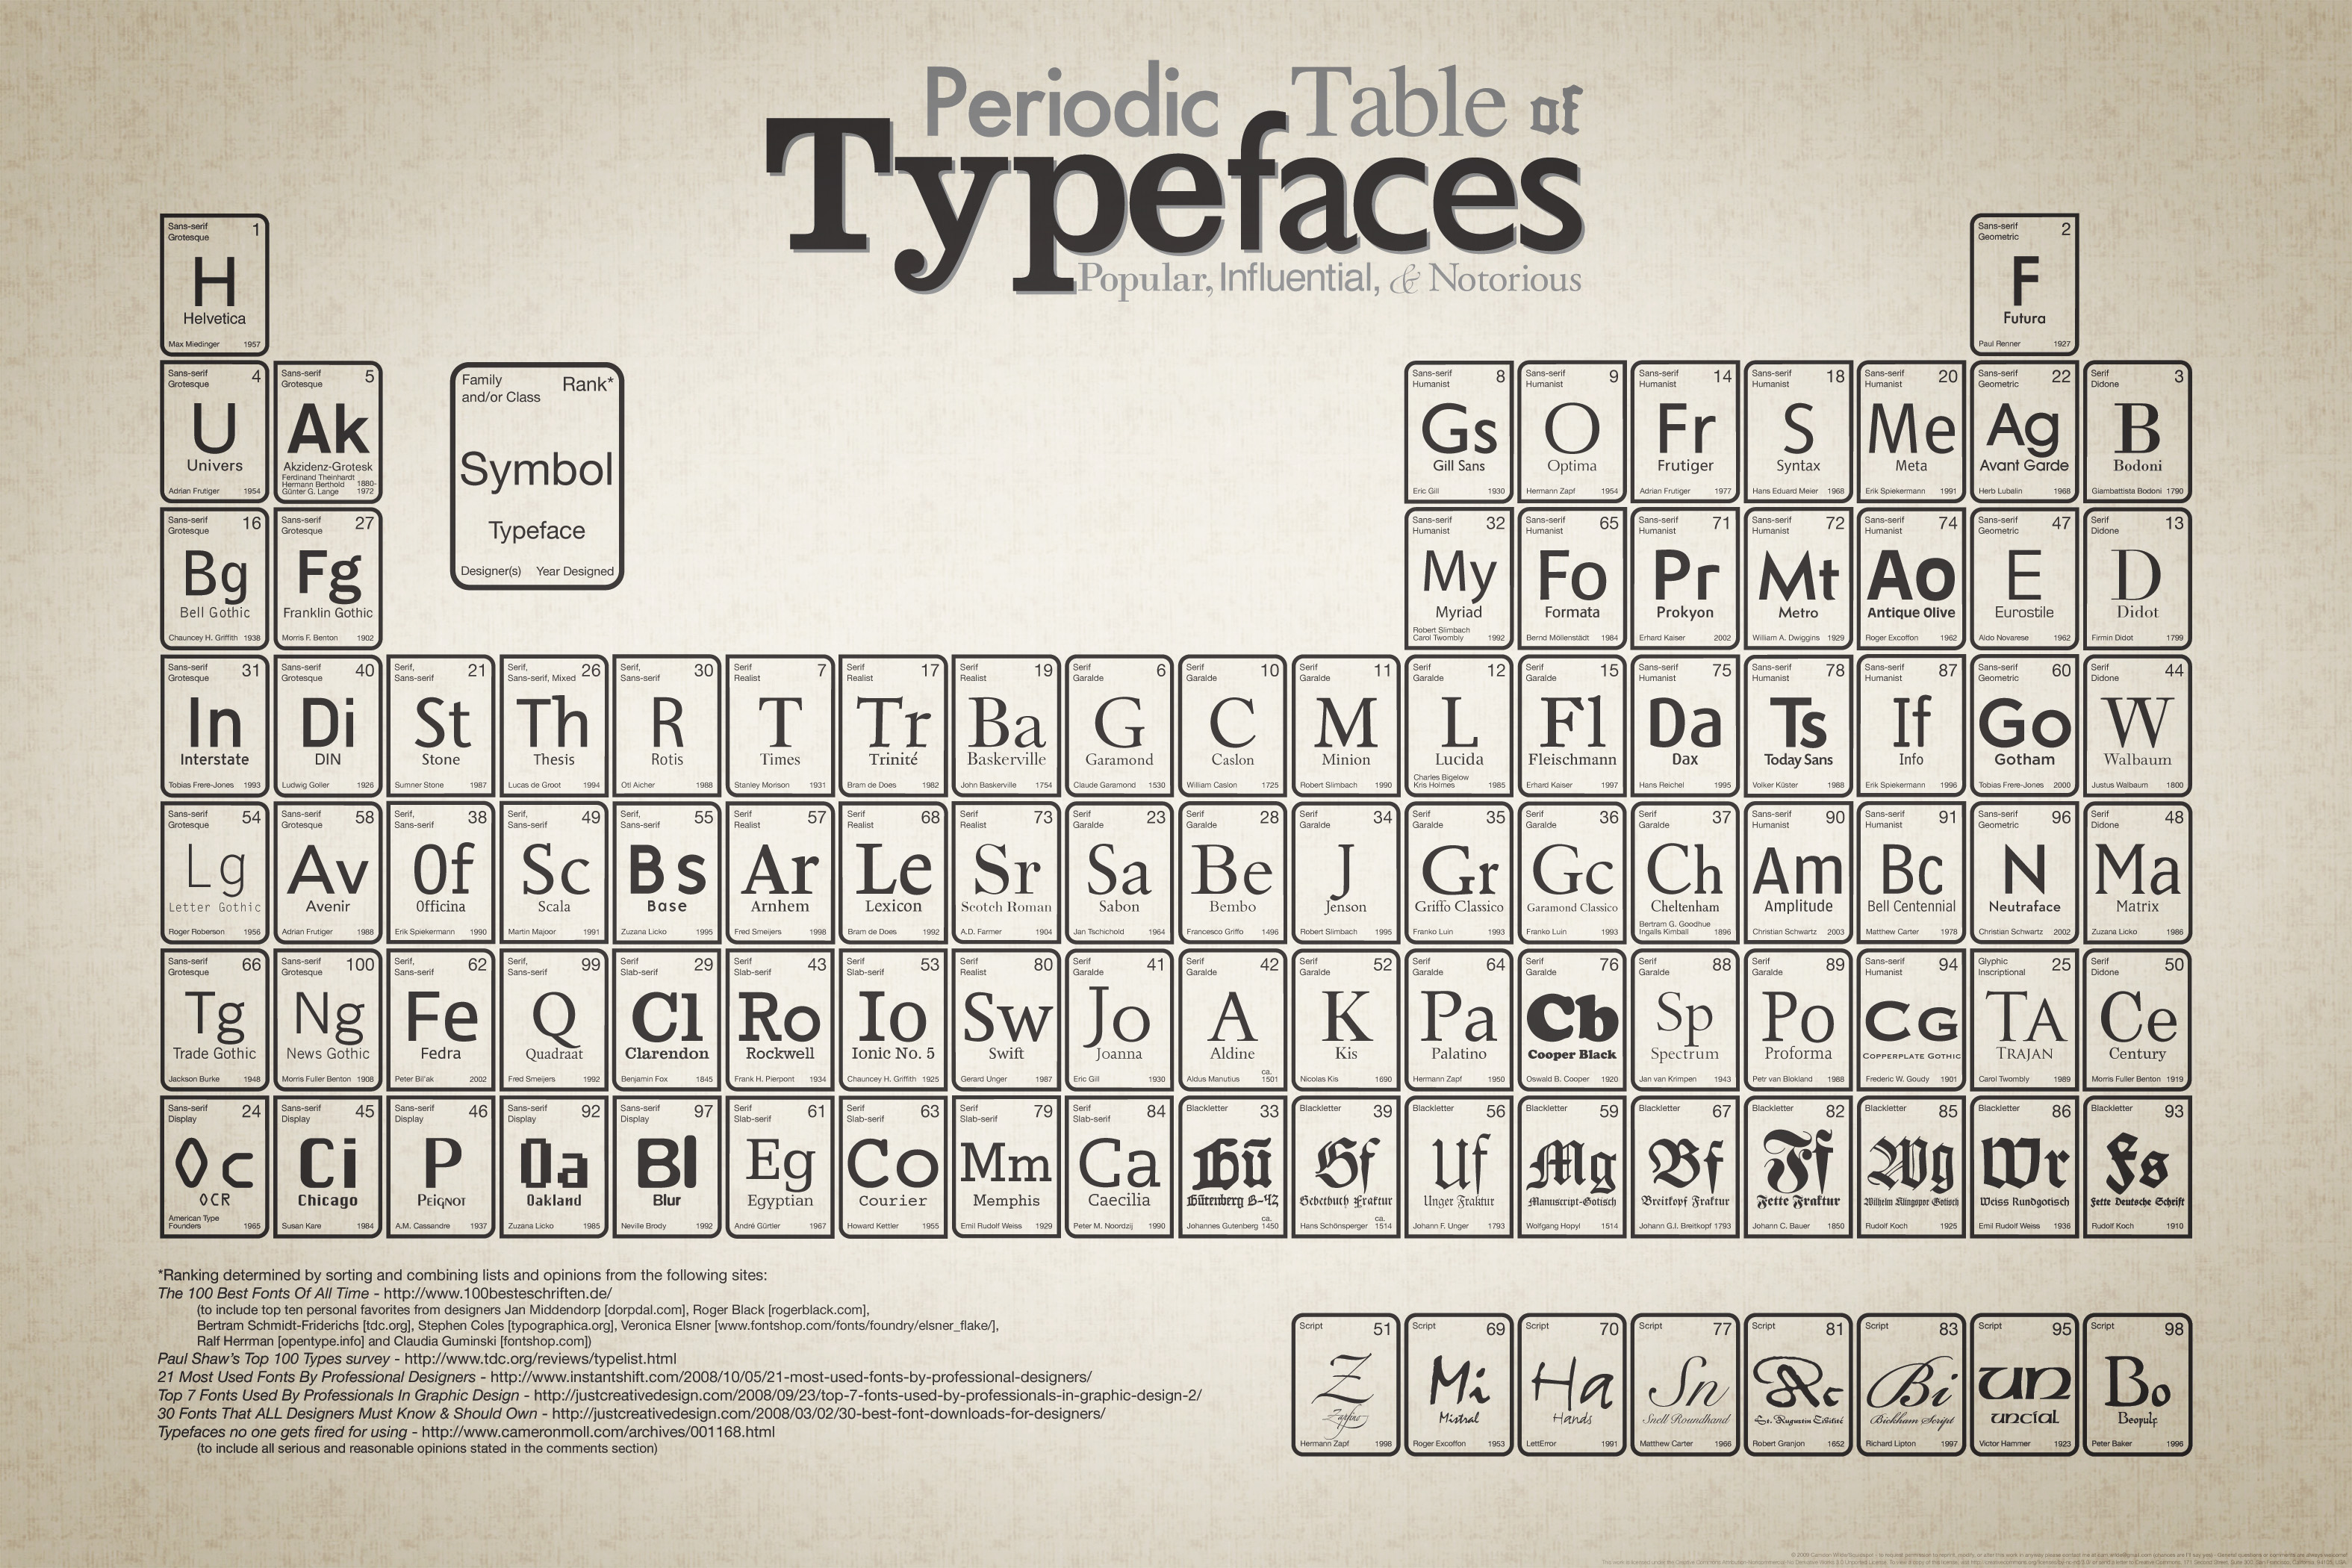 Cool infographics glantz design periodic table of typefaces gamestrikefo Image collections